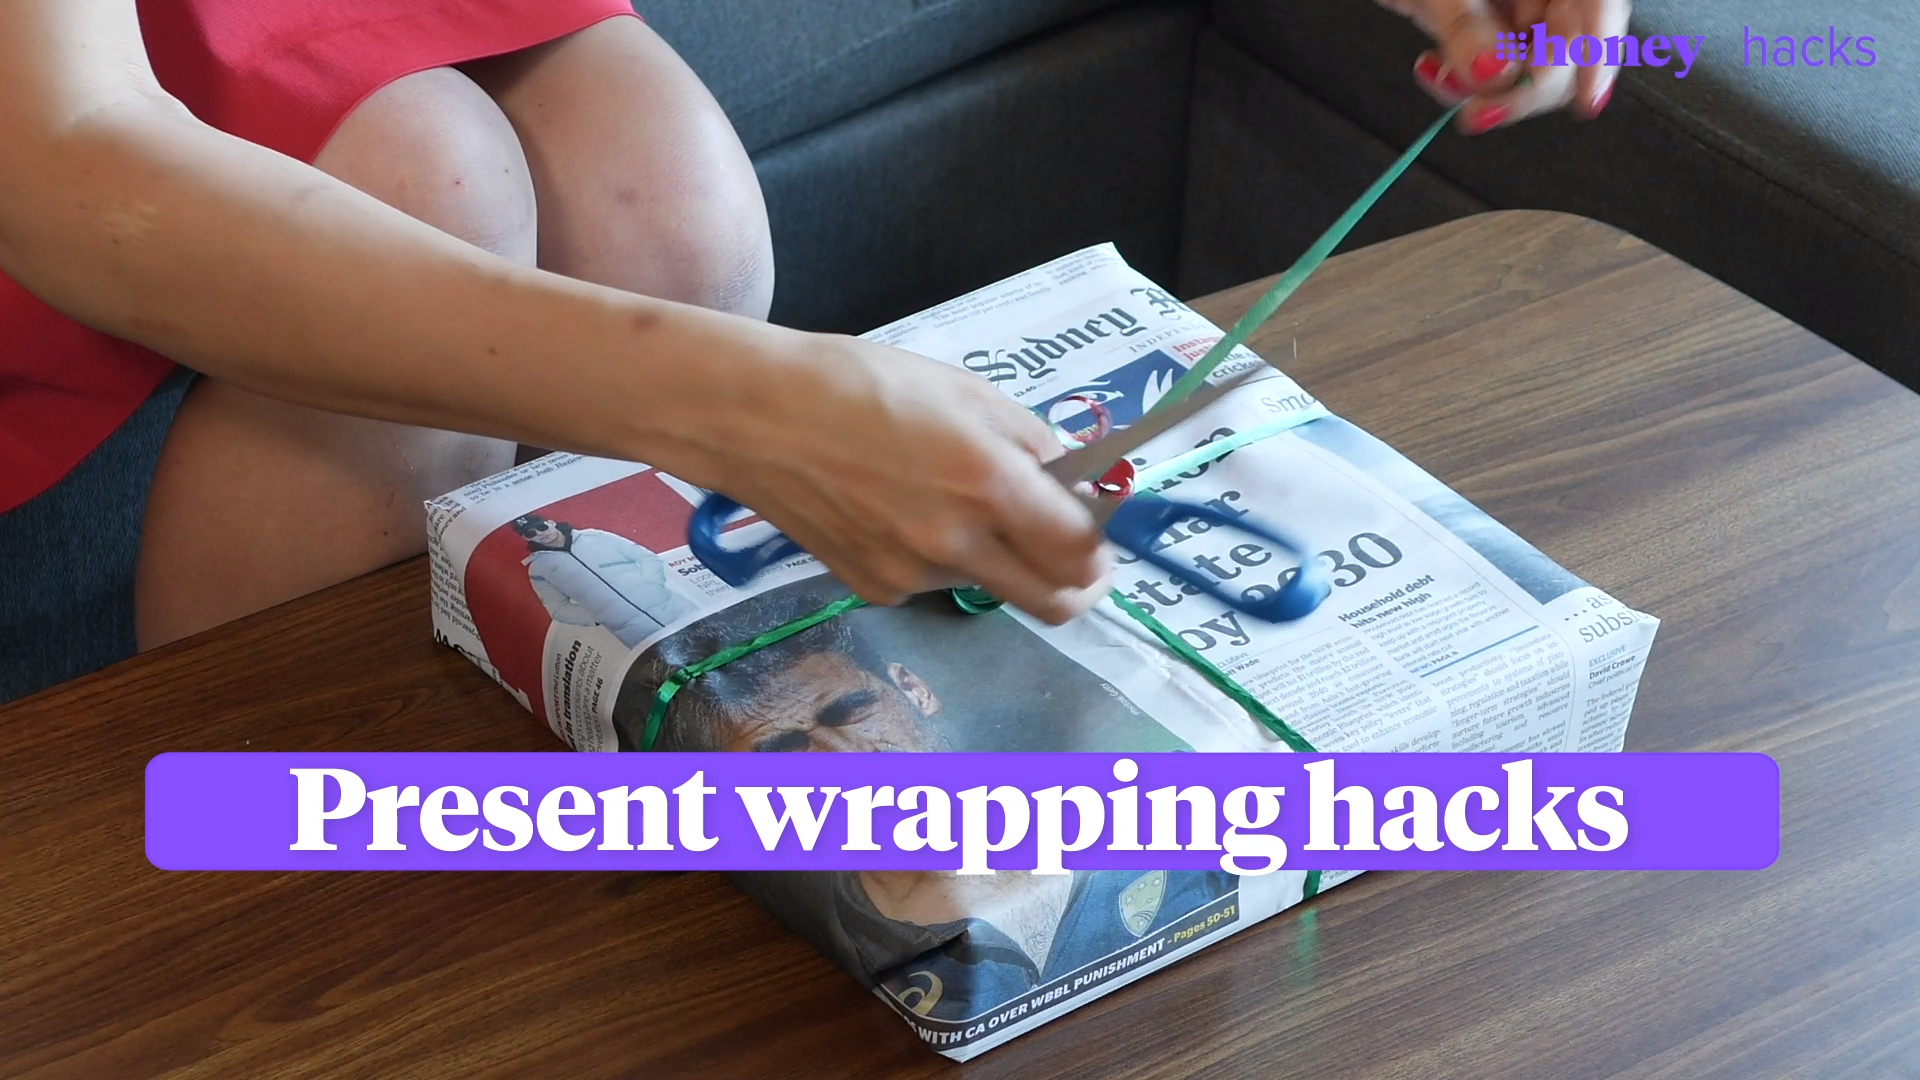 Simple present wrapping hacks